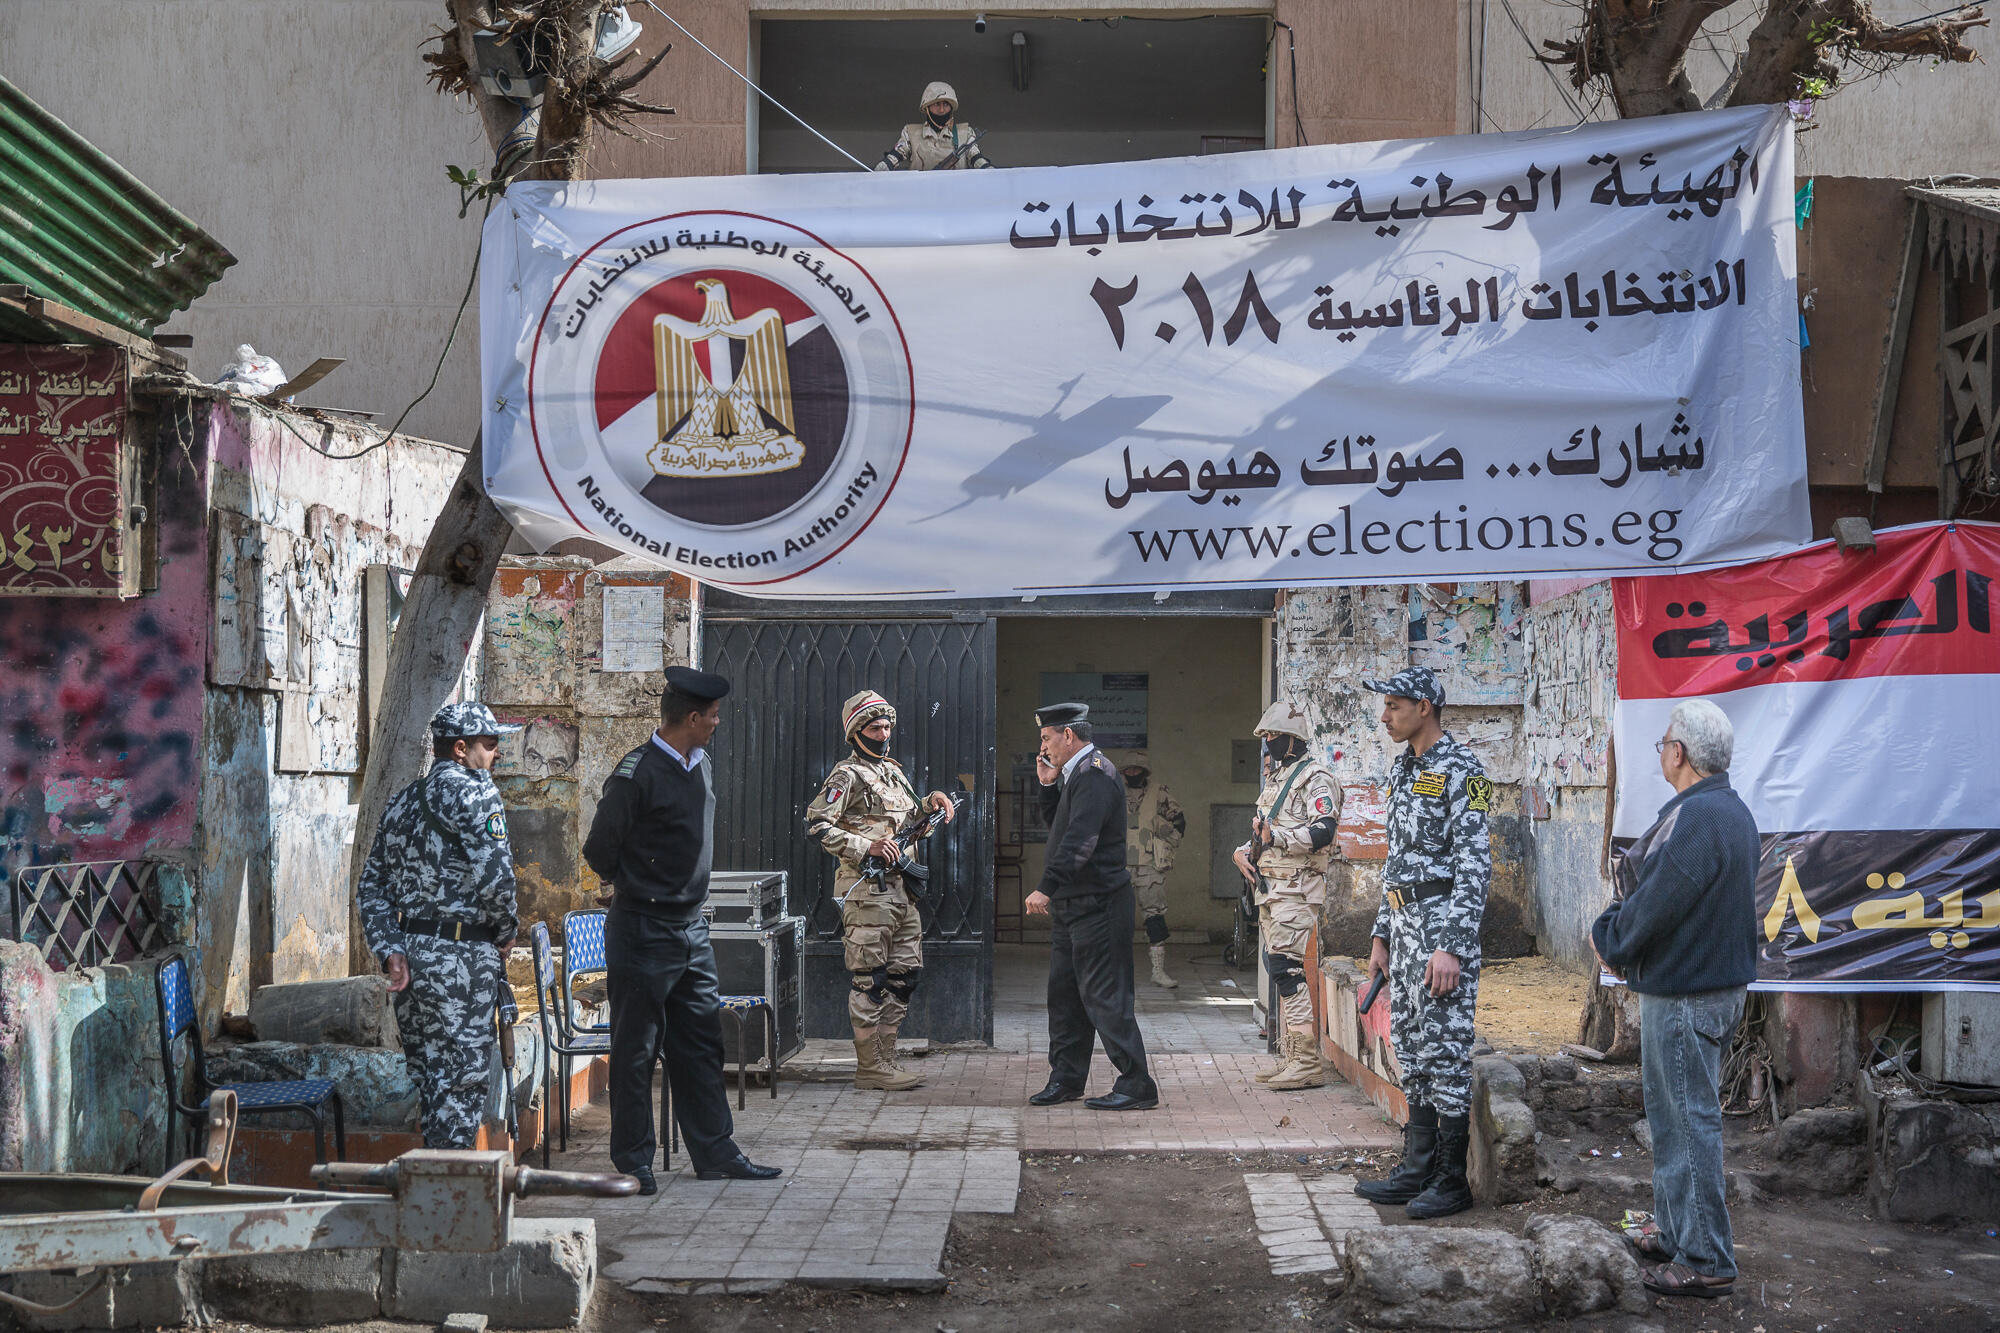 Polling station in el-Gamaleya, the district where Abdel Fattah al-Sisi grew up in Cairo, 26 March 2018.